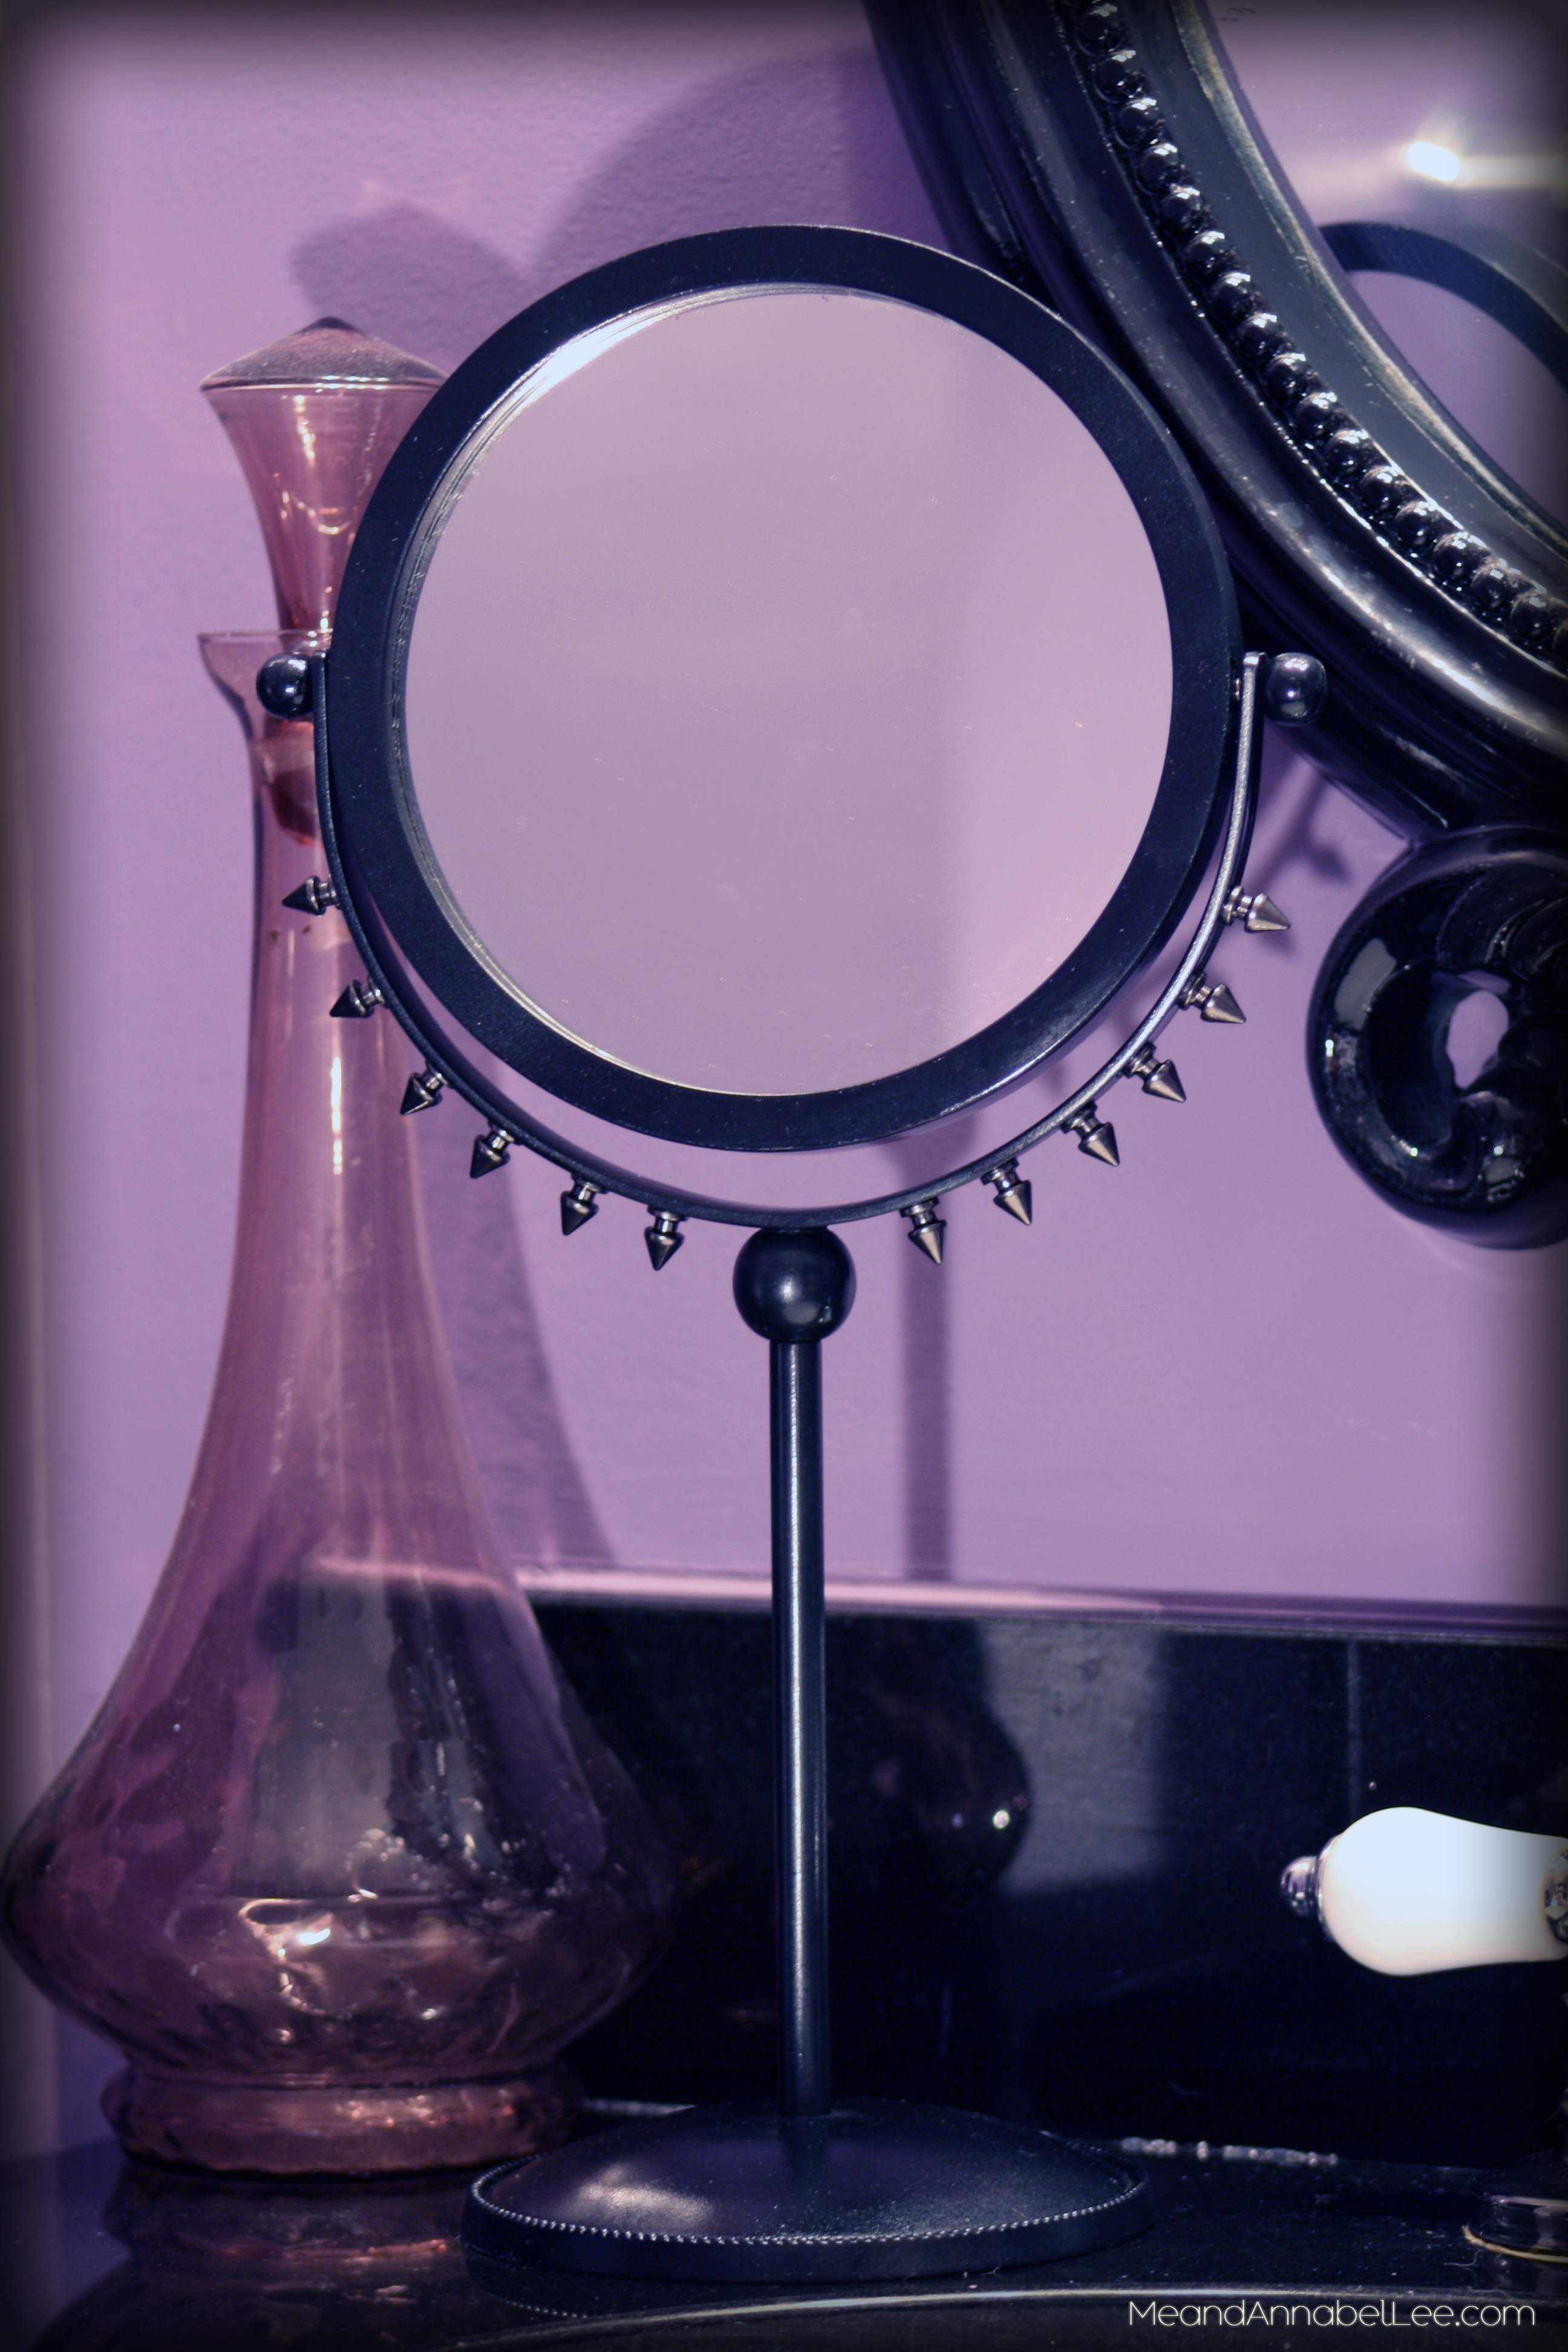 A Makeup Mirror gets a Rock Star Makeover - DIY Rockstar Gothic Goth Heavy Metal Spiked Mirror - Goth It Yourself - www.MeandAnnabelLee.com